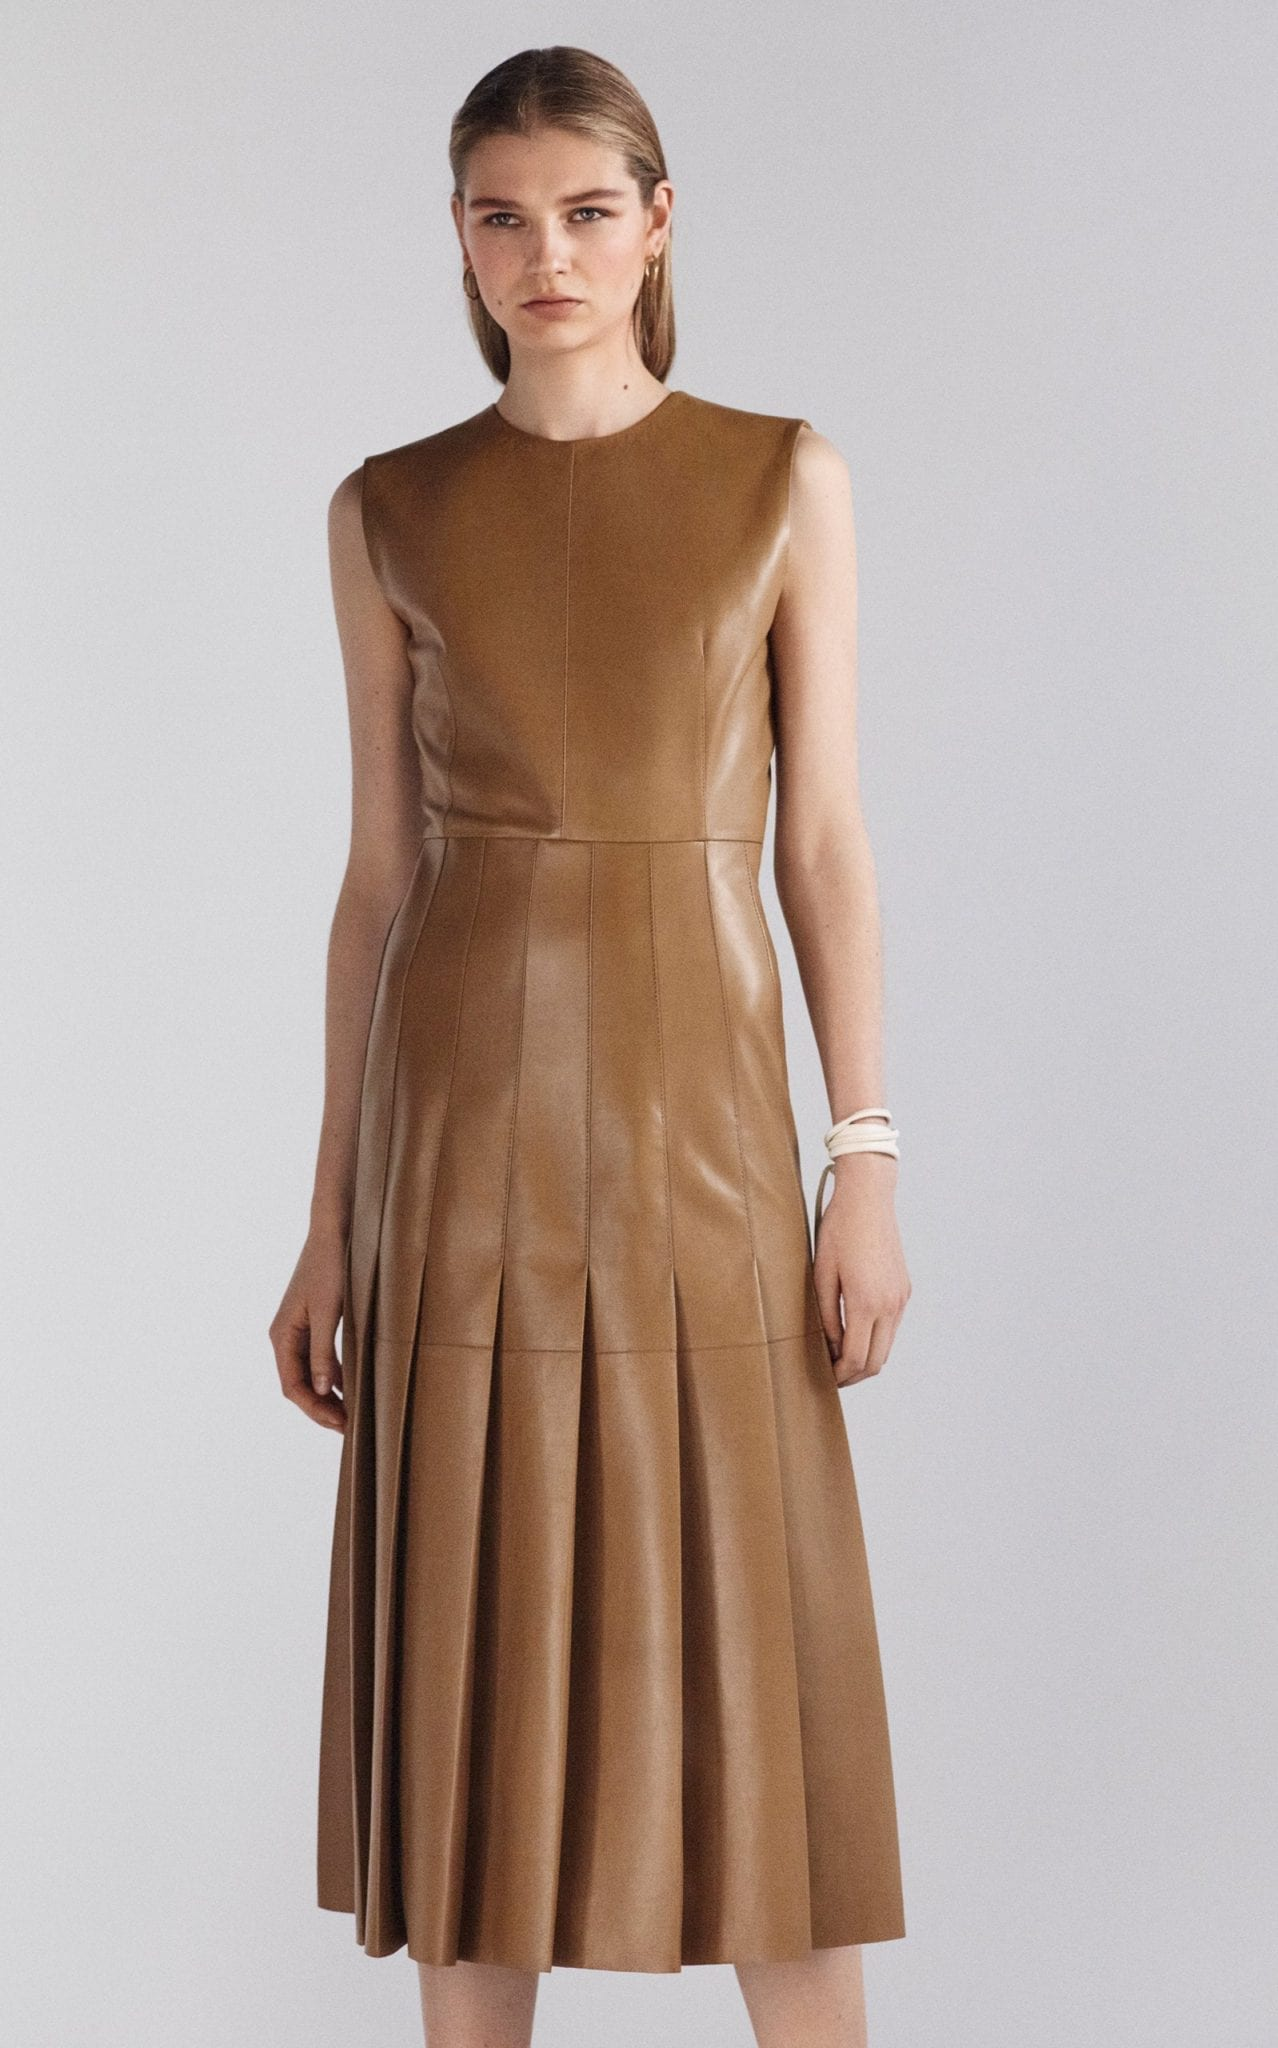 JOSEPH Demry Pleated Lambskin Dress